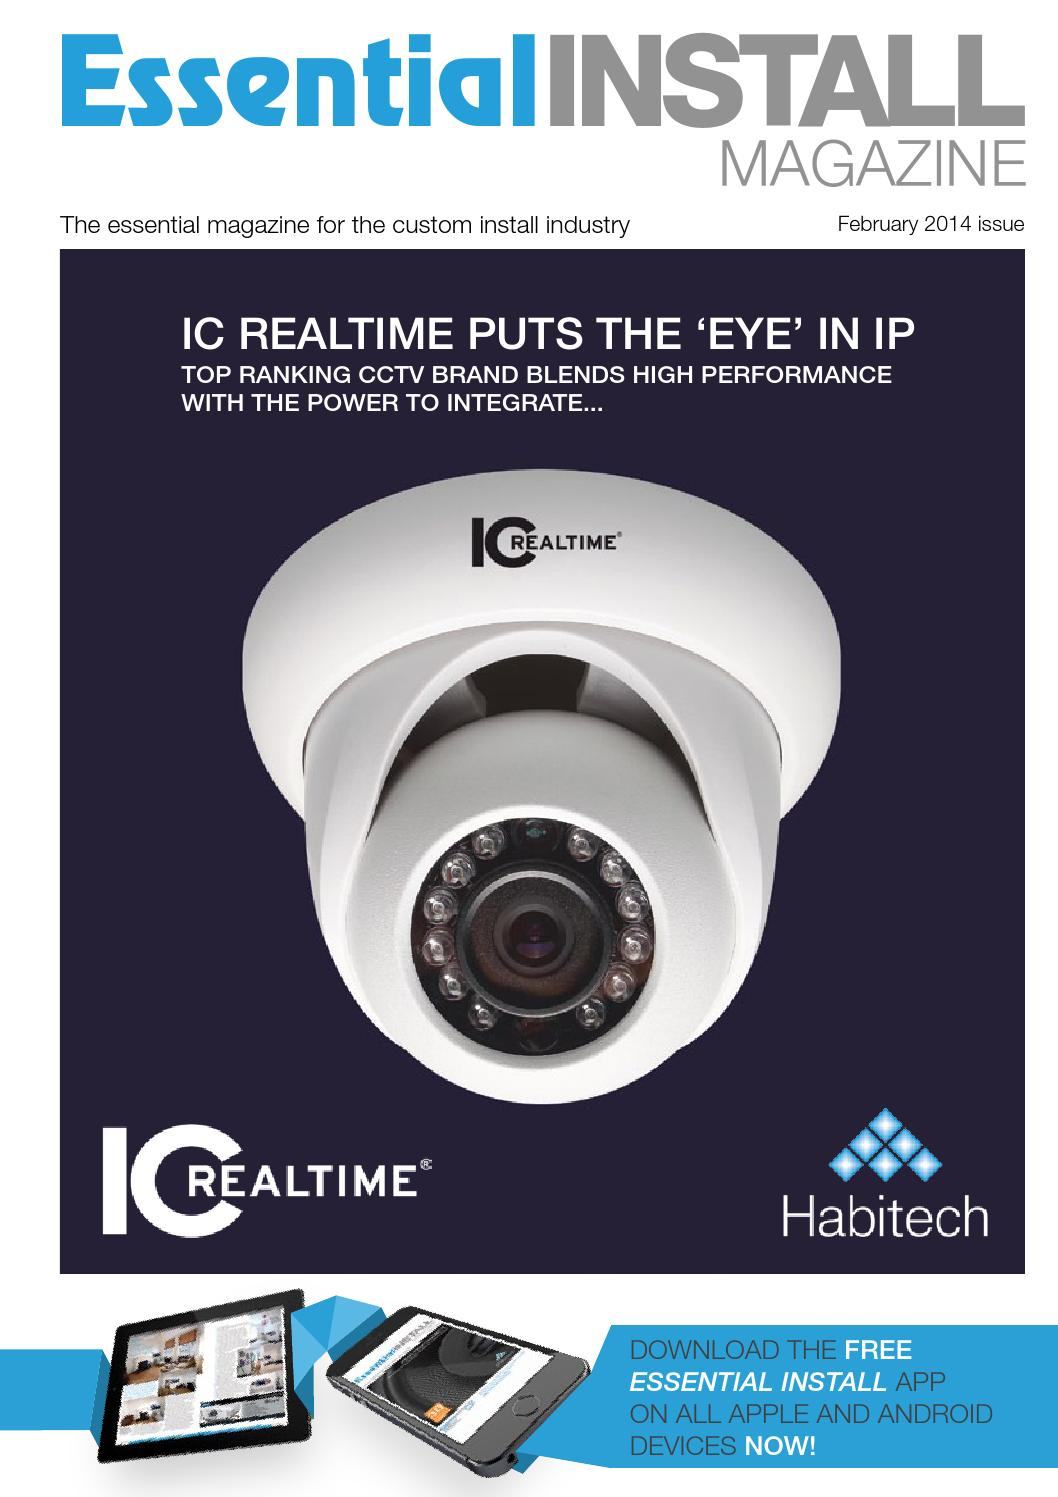 Essential Install February 2014 Issue By Issuu The Rako Wireless Dimming Controls In Detail Ceiling Inline And